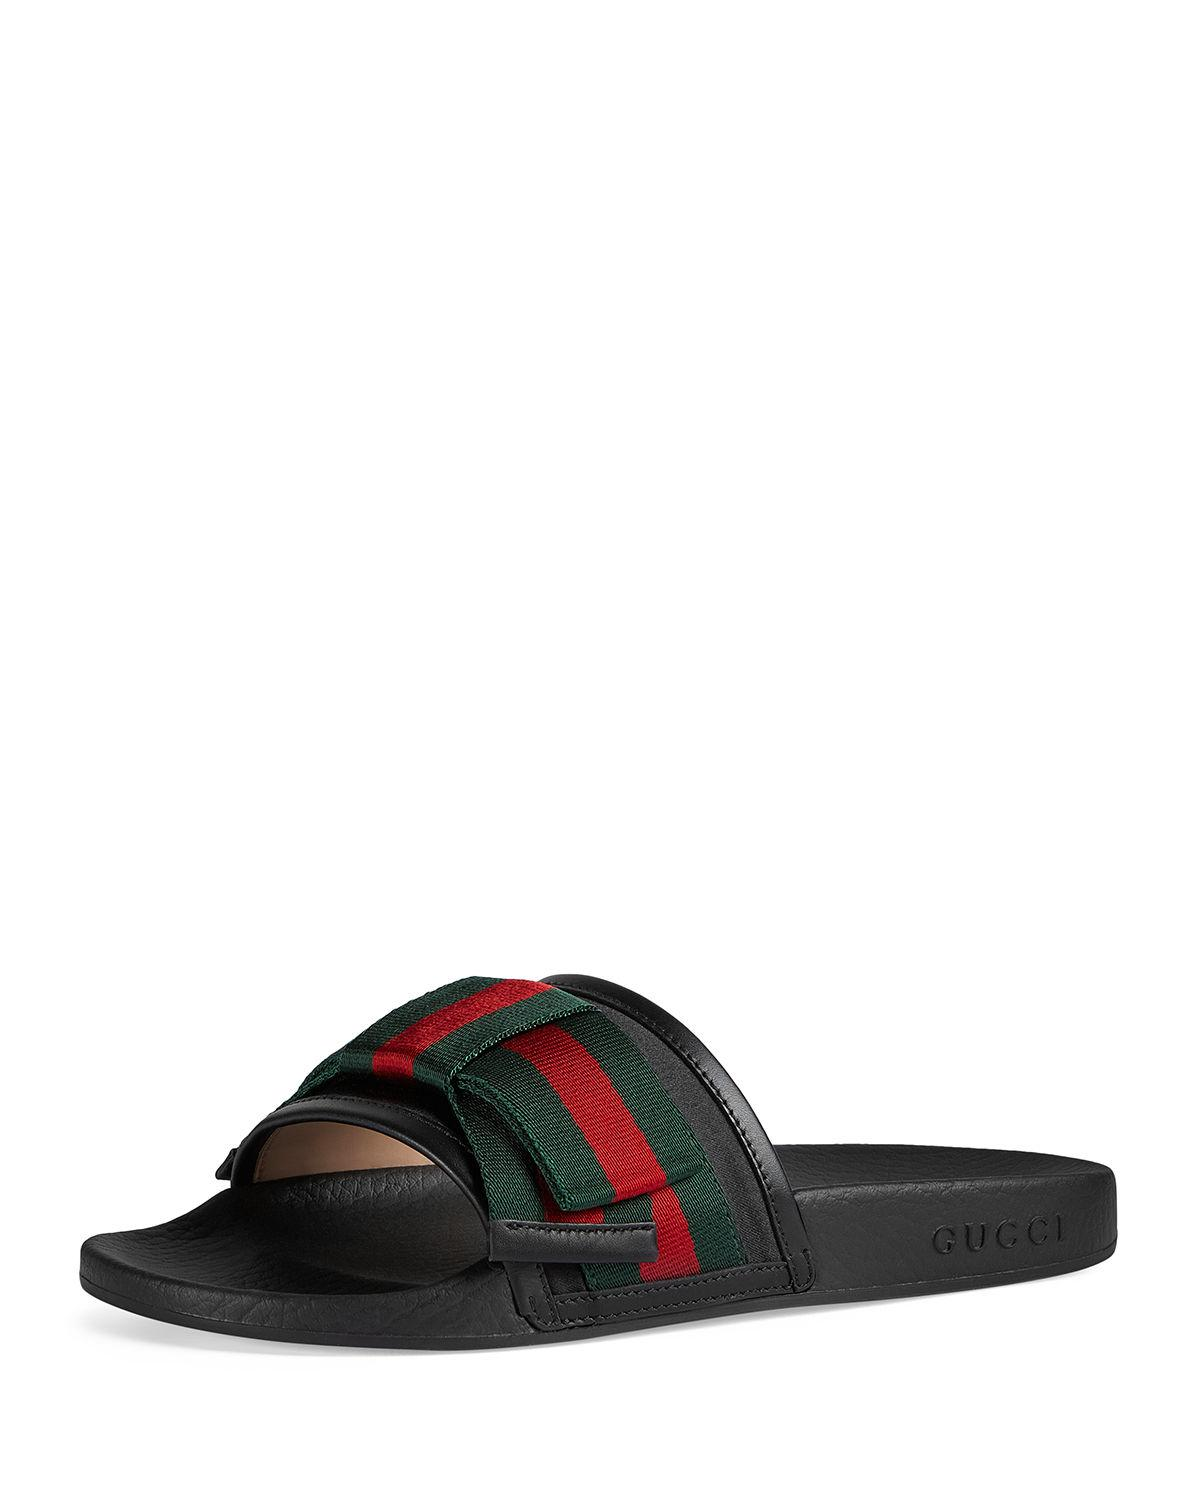 72cec8a403d Lyst - Gucci Flat Pursuit Slide With Bow in Black - Save 25%